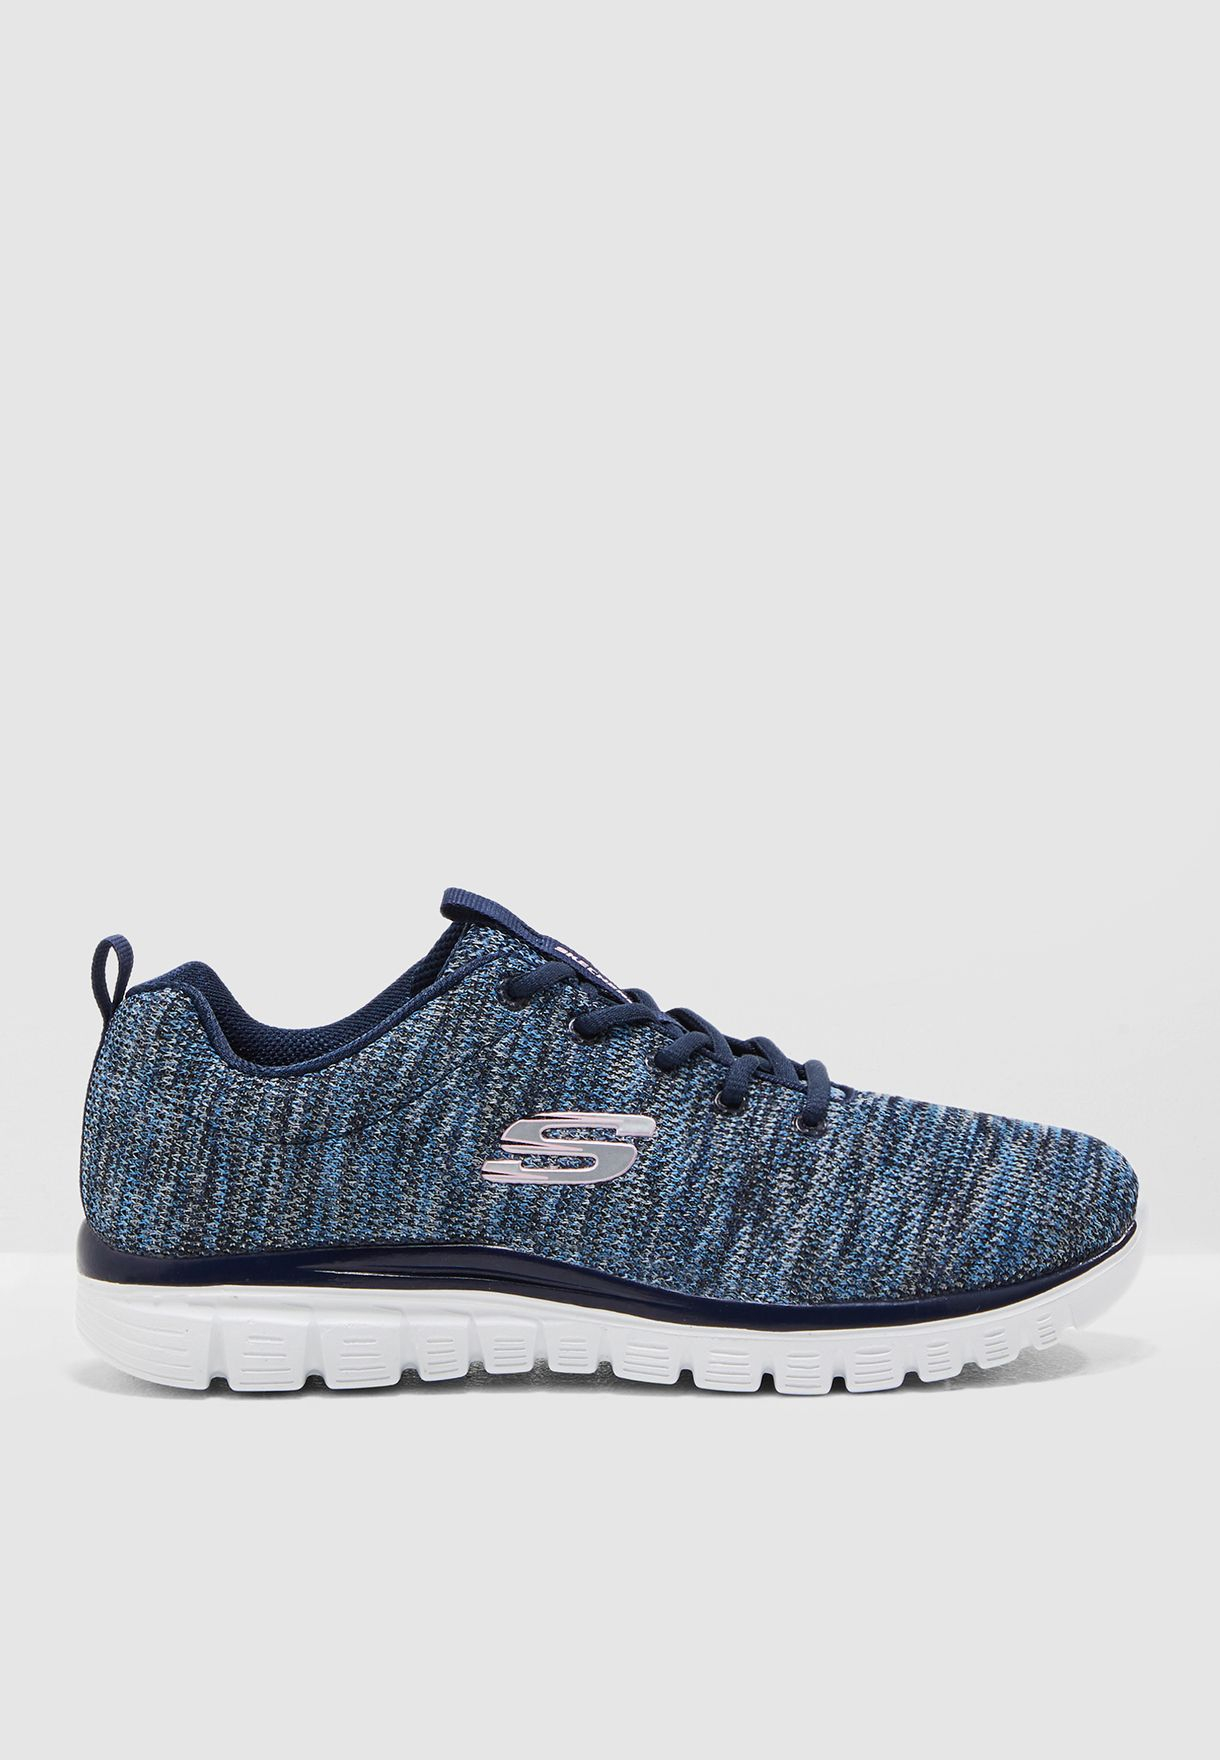 Skechers graceful twisted